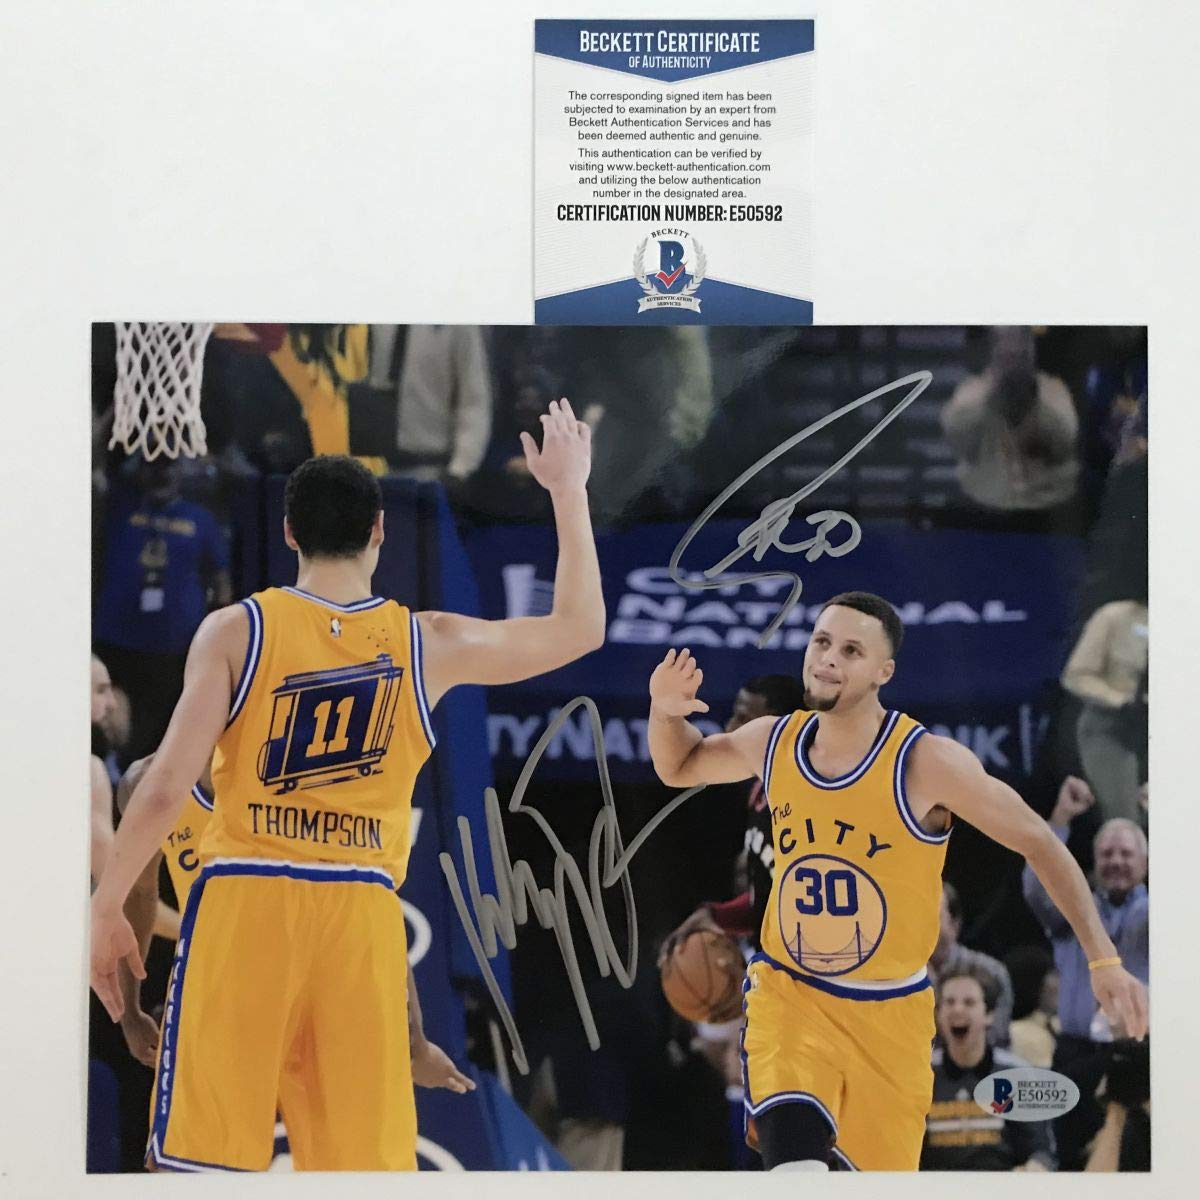 ebdeb40d36a Autographed/Signed Stephen Steph Curry & Klay Thompson Splash Brothers Bros  8x10 Basketball Photo Beckett BAS COA at Amazon's Sports Collectibles Store